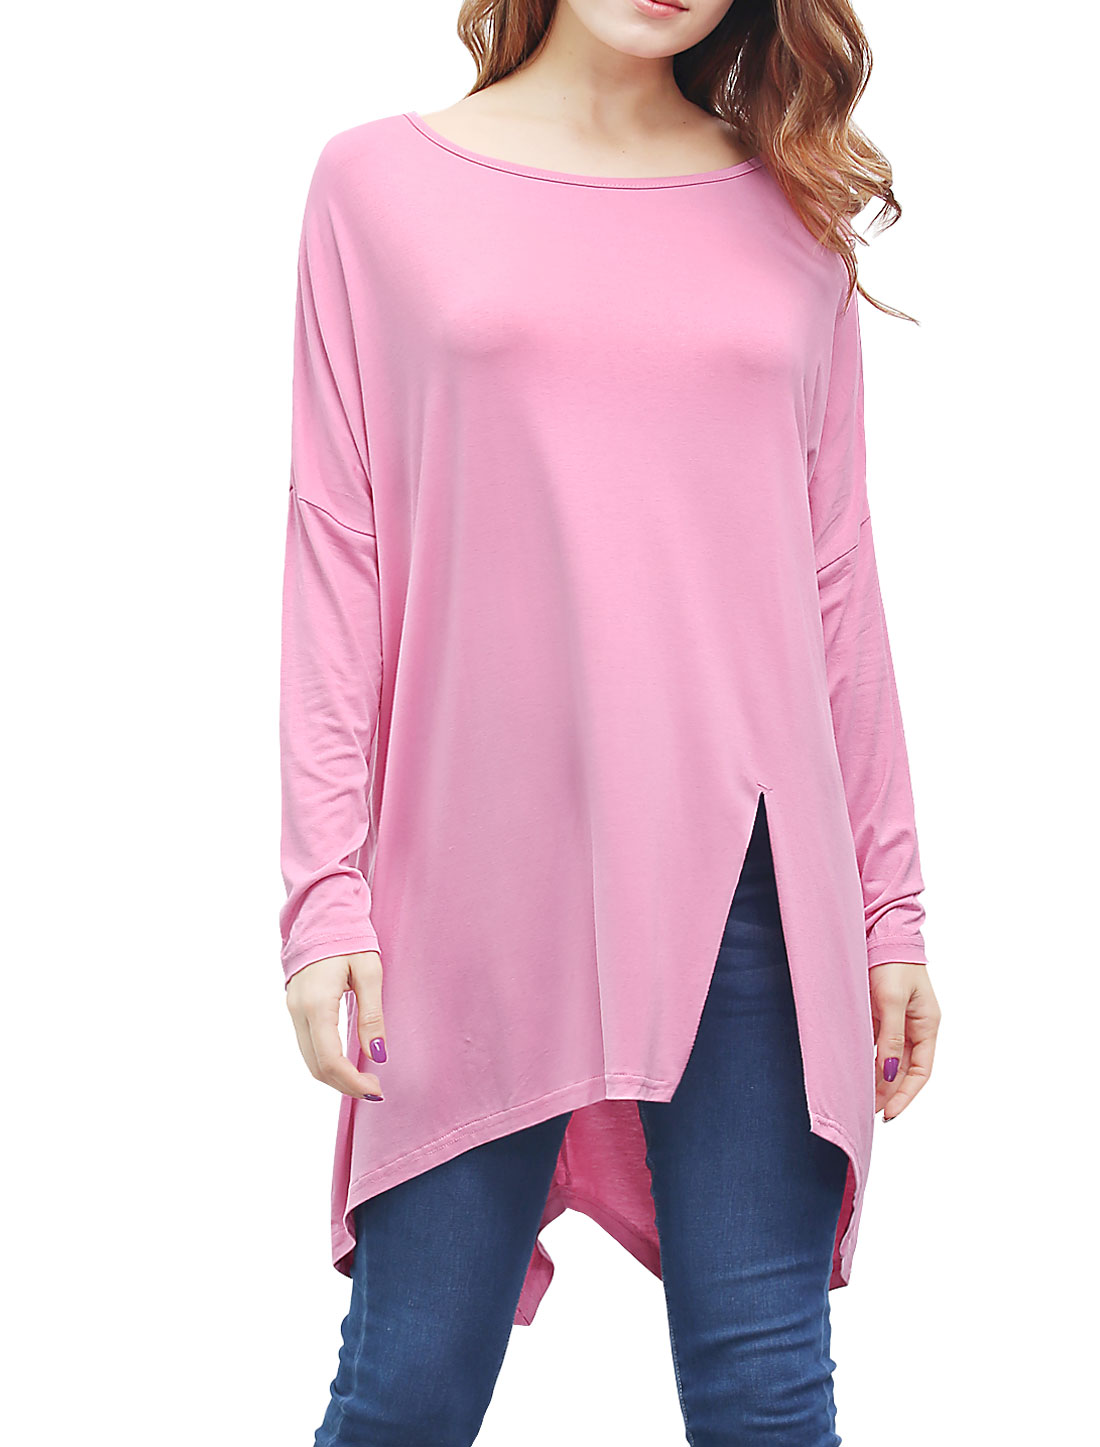 Women Batwing Sleeves Front Slit Oversized Tunic Top Pink L